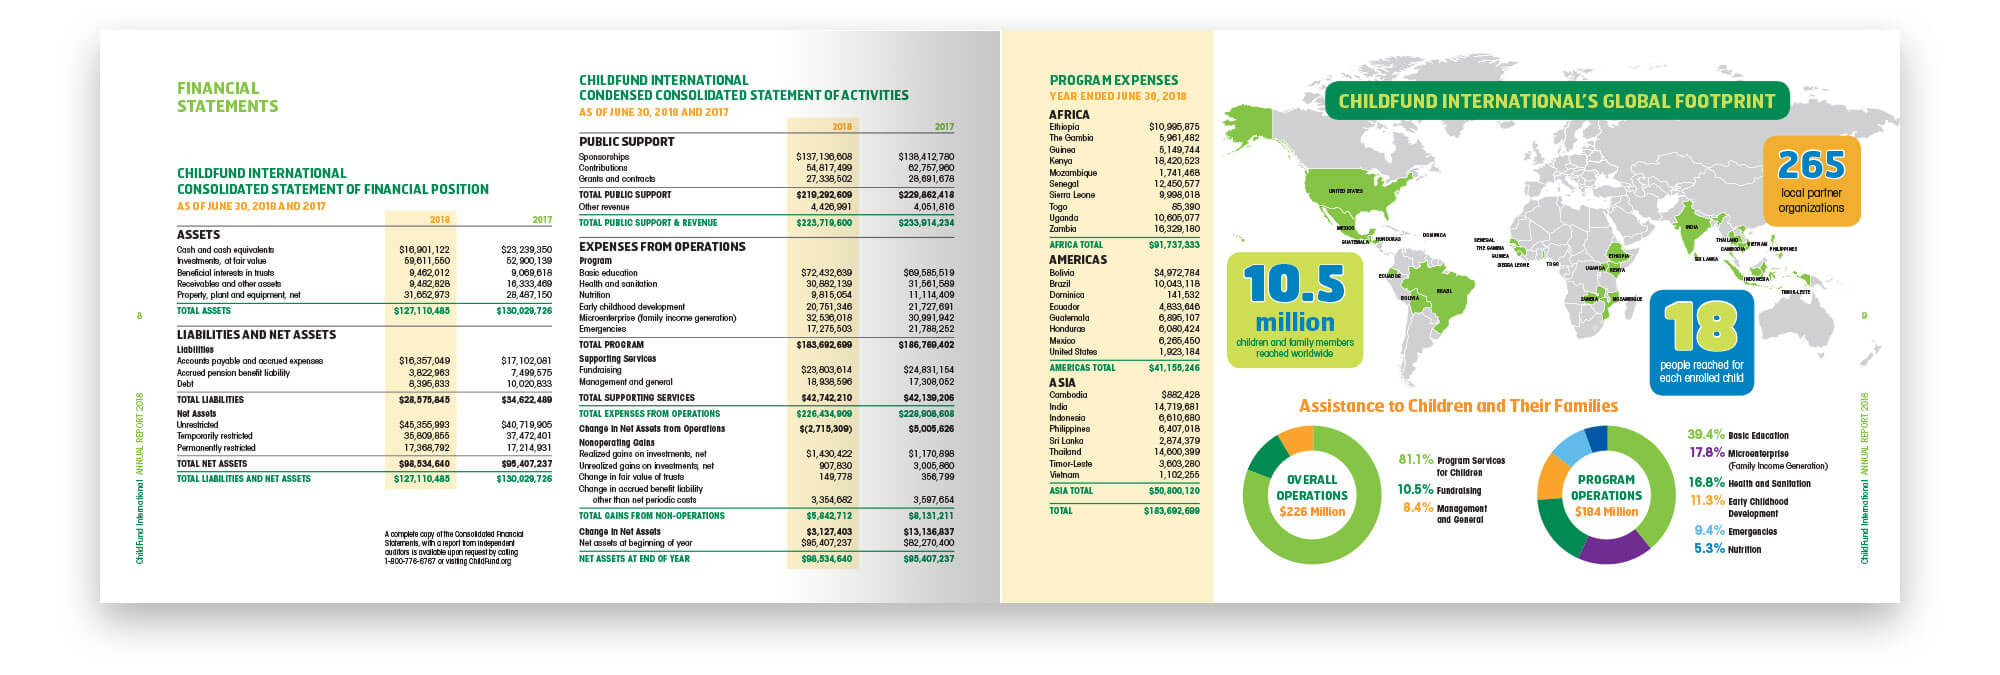 Financial Statement and By the Numbers spread